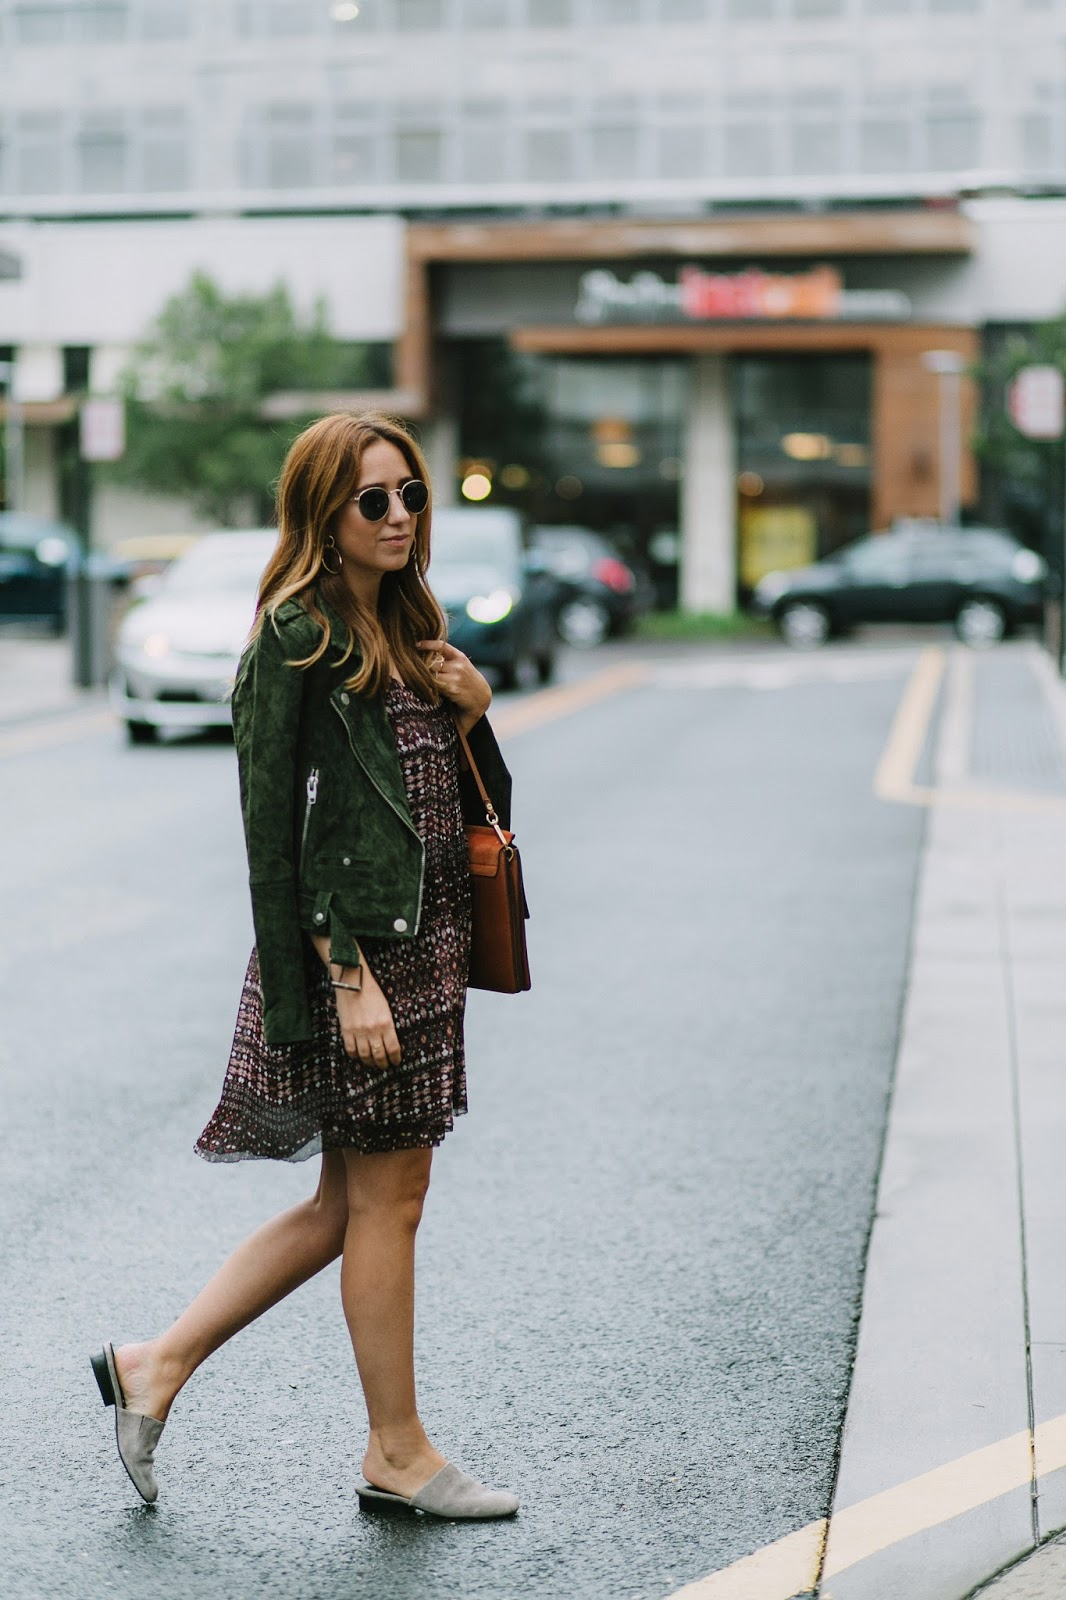 floral prints, fall, trends, 2016, blog, blogger, style, inspiration, outfit, moto jacket, blank nyc moto jacket, suede jacket, floral dress, best mules, best slides, comfortable shoes, fall fashion, layering, layered look